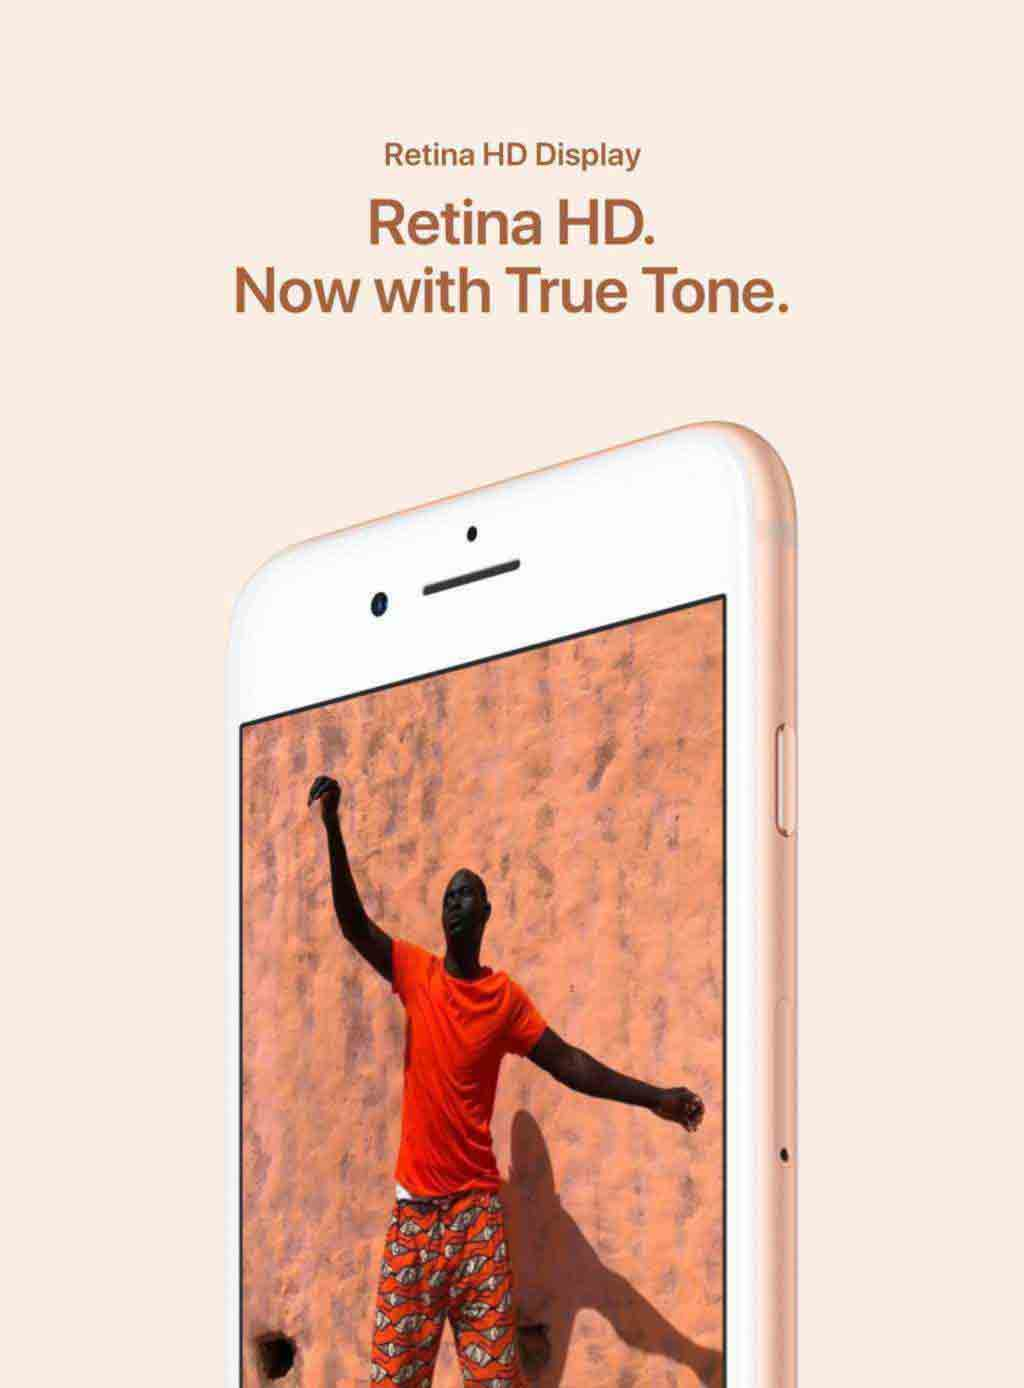 Retina HD. Now with True Tone.